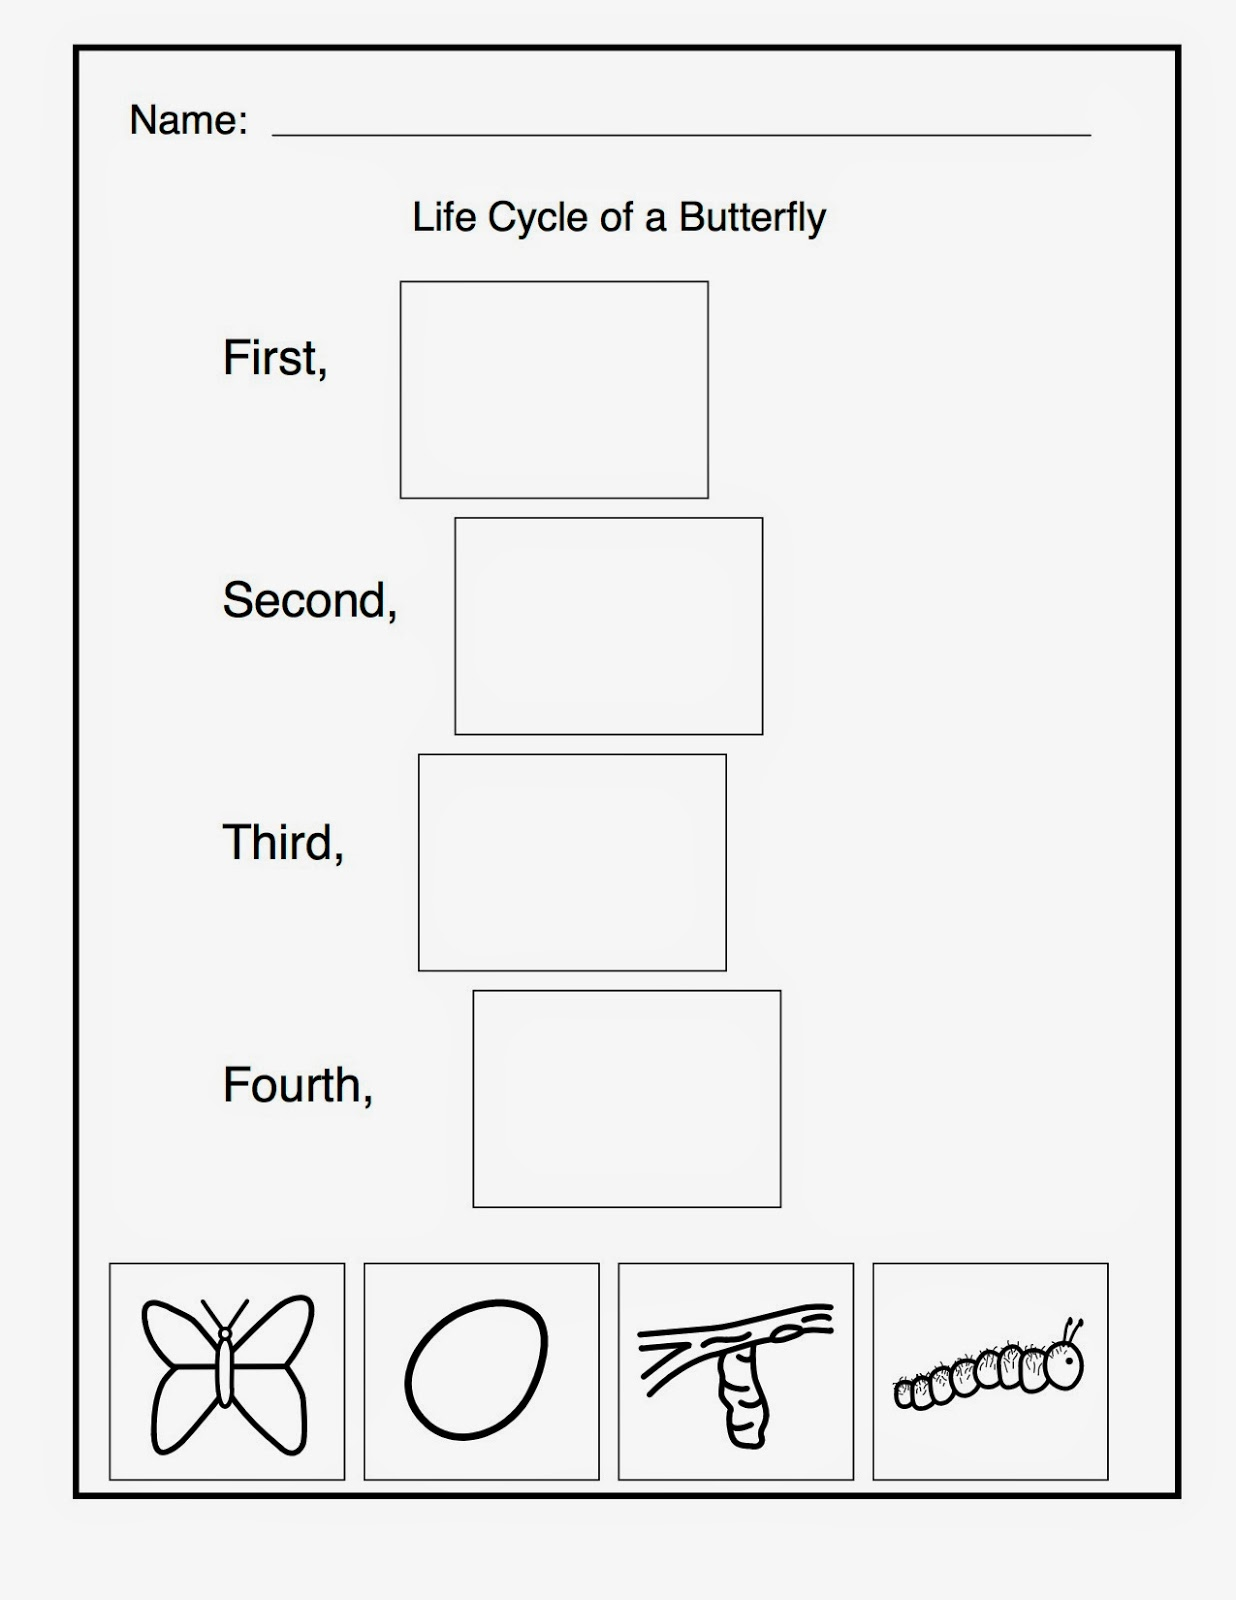 Displaying 12> Images For - Life Cycle Of A Butterfly Worksheet...